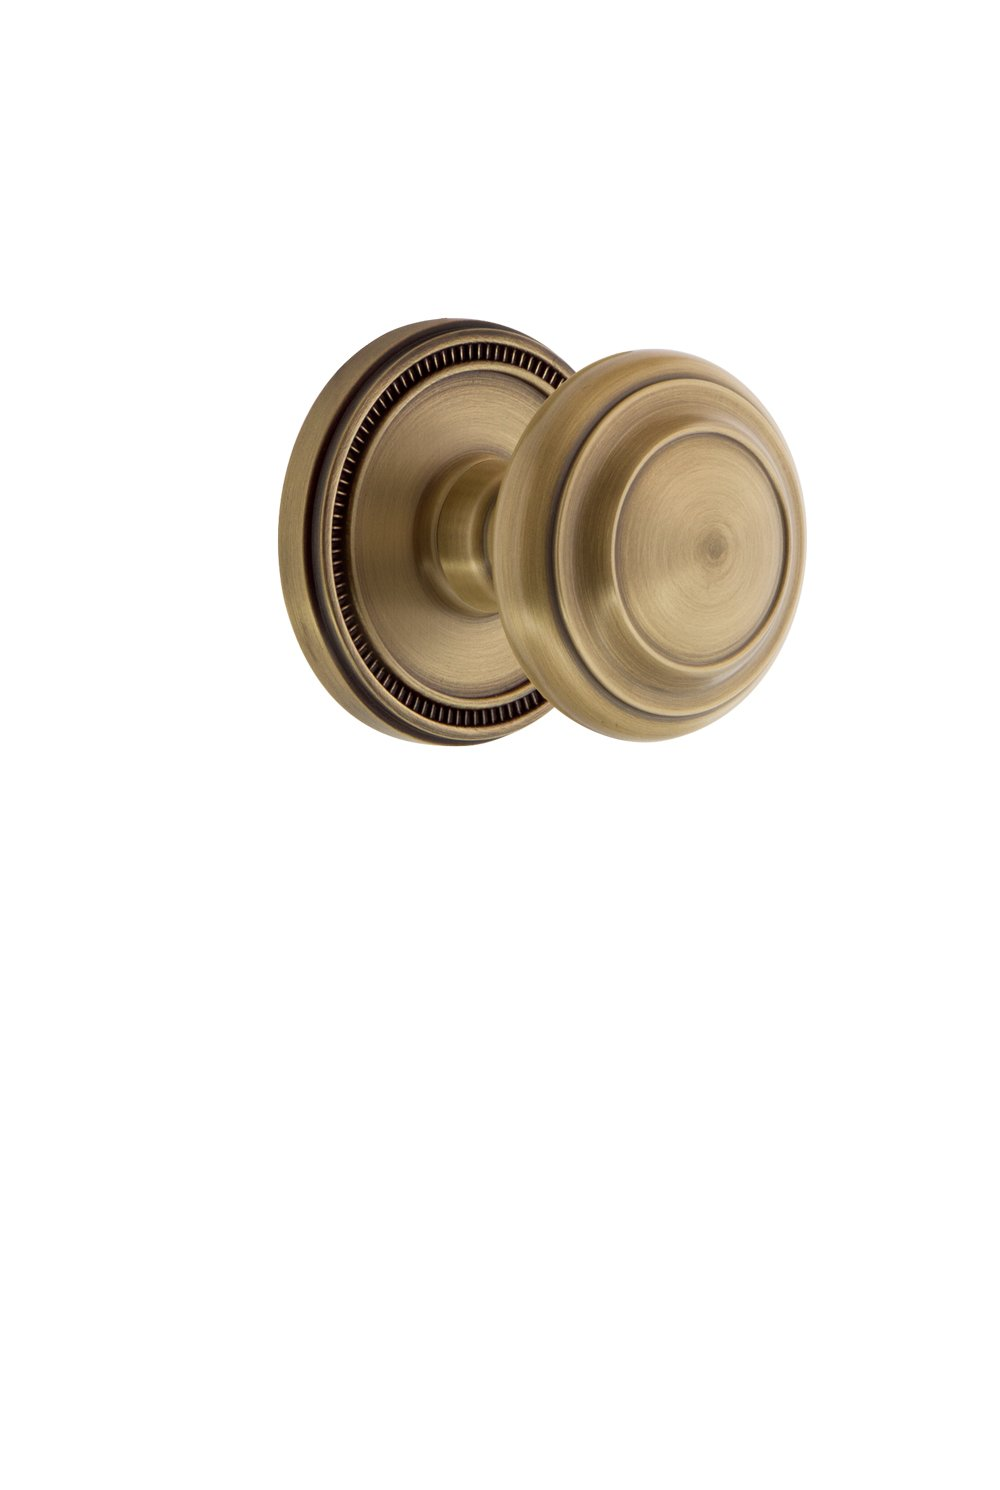 Grandeur 809636 Soleil Rosette Double Dummy with Circulaire Knob in Antique Pewter